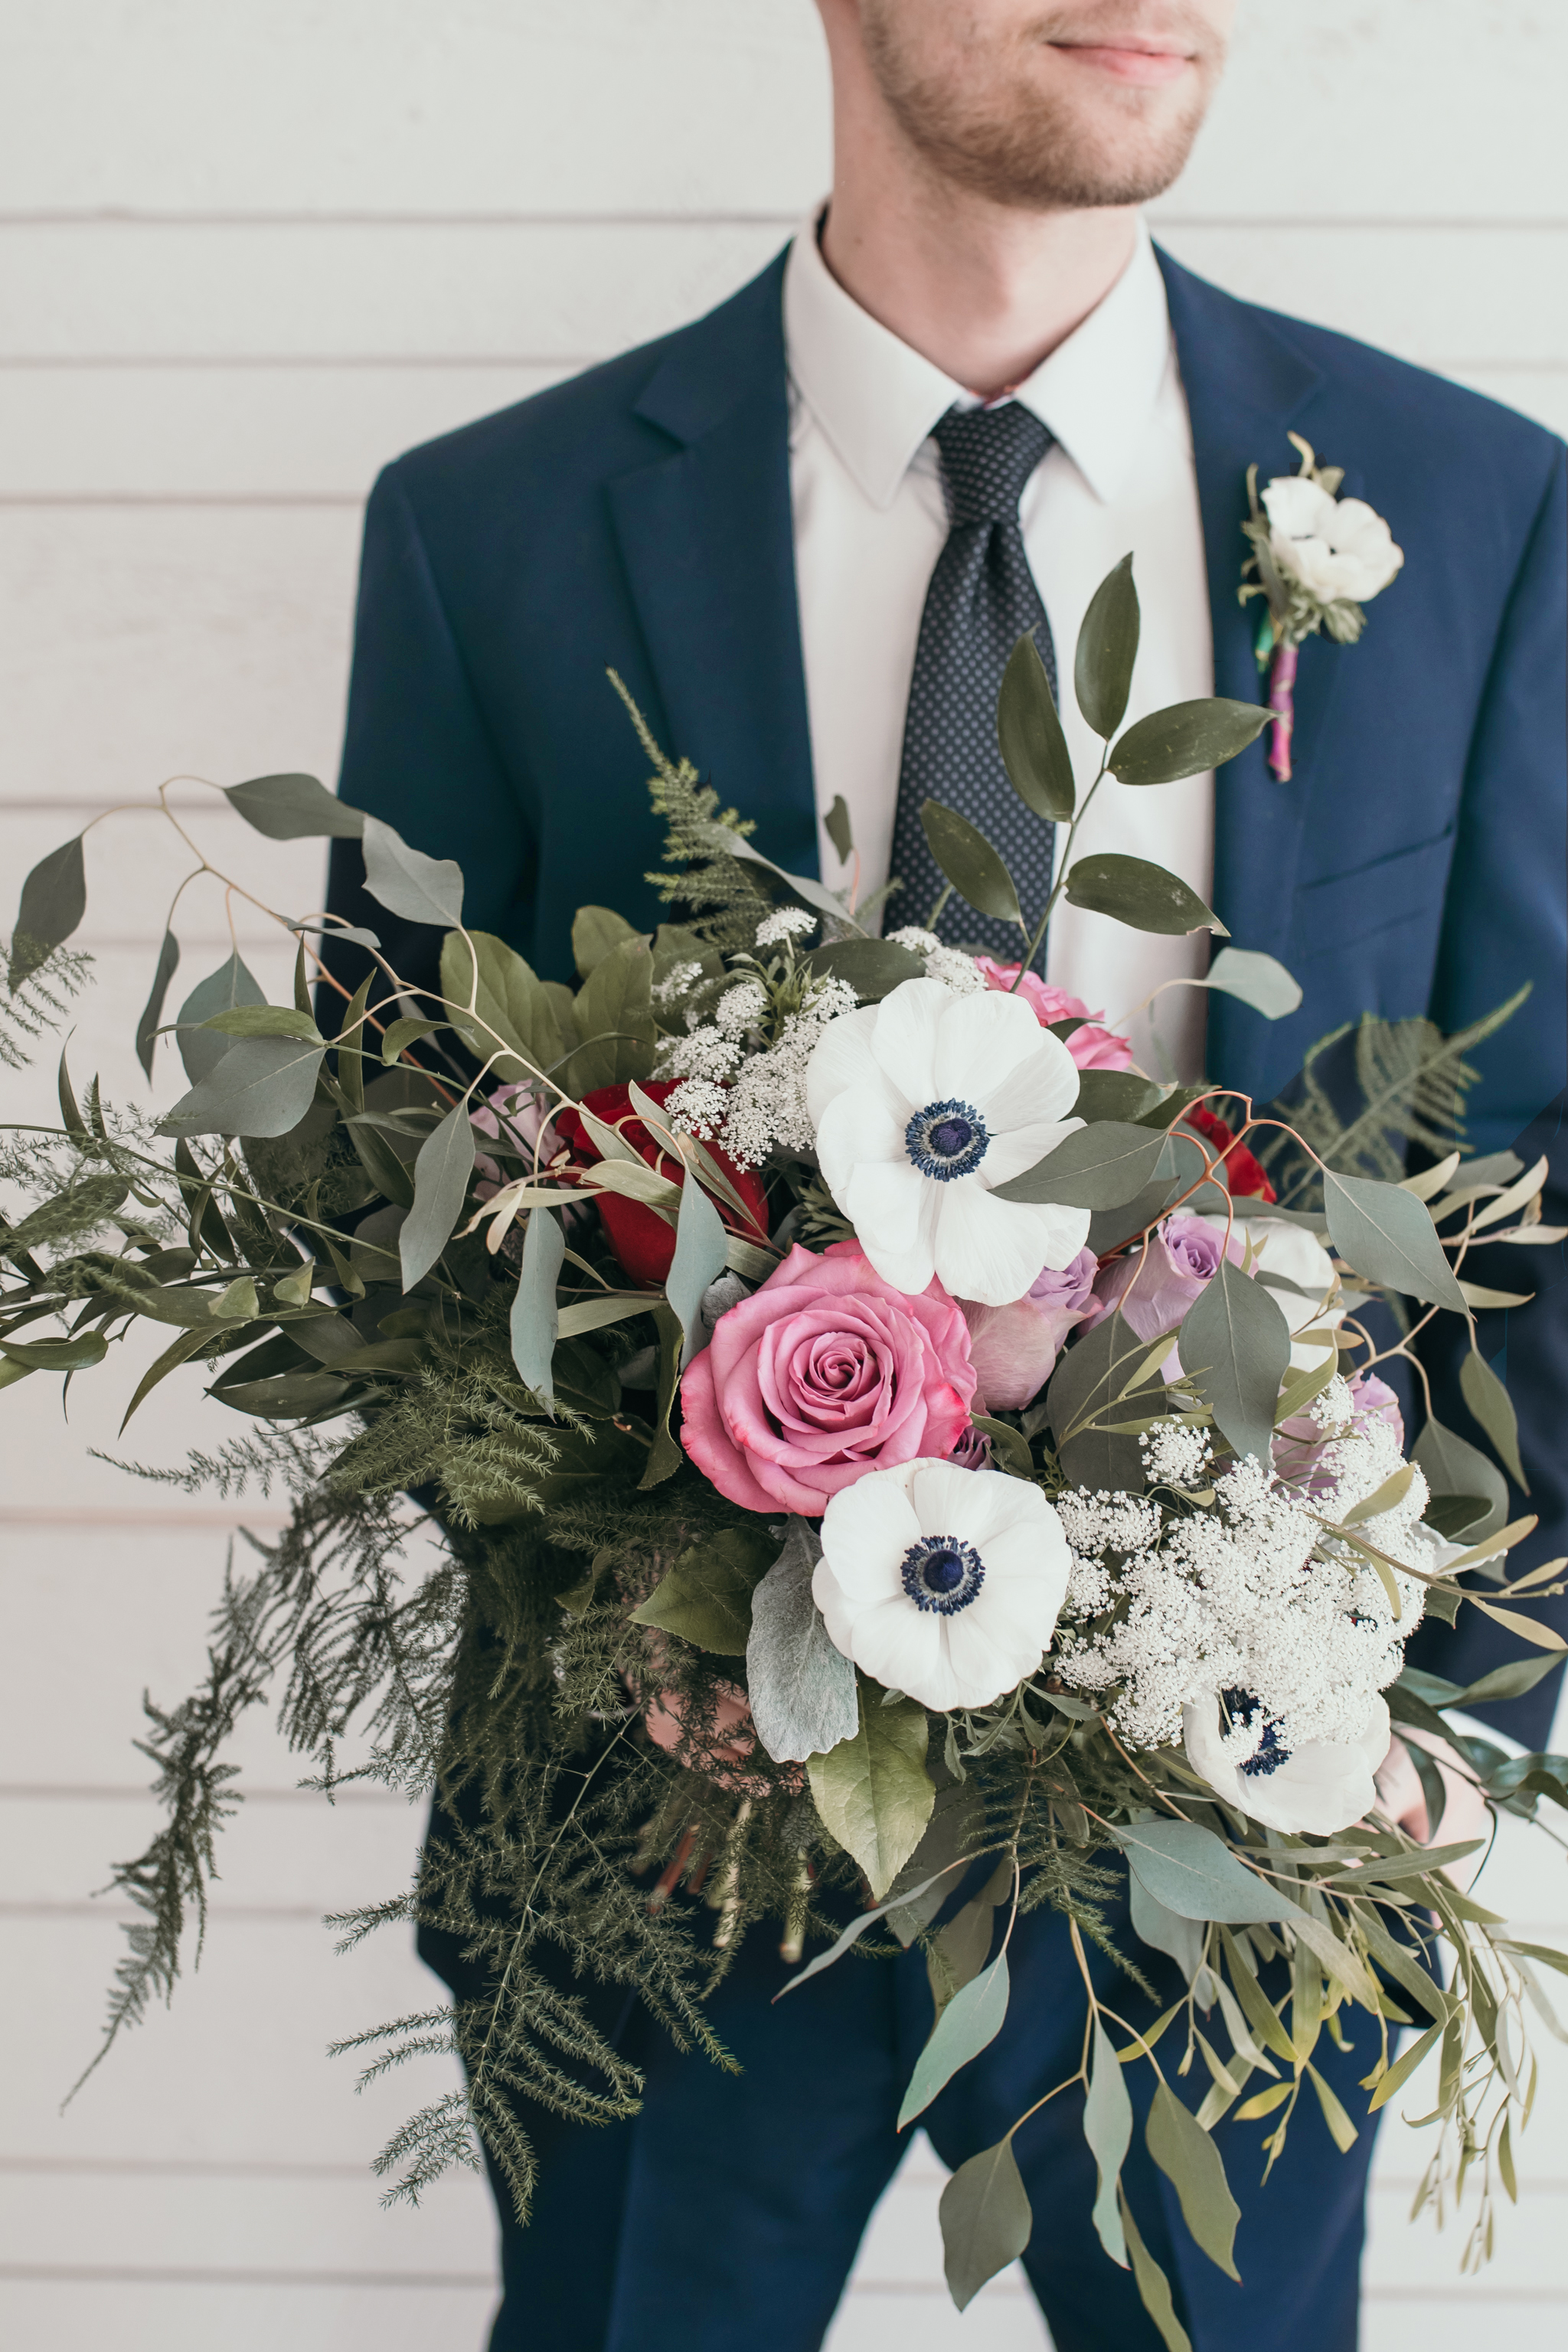 Jewel Tone Wedding Styled Shoot_Silver Knot_Montana Wedding Planner_Montana Wedding Photographer_Montana Wedding Videography_Honeybee Weddings-0634.jpg